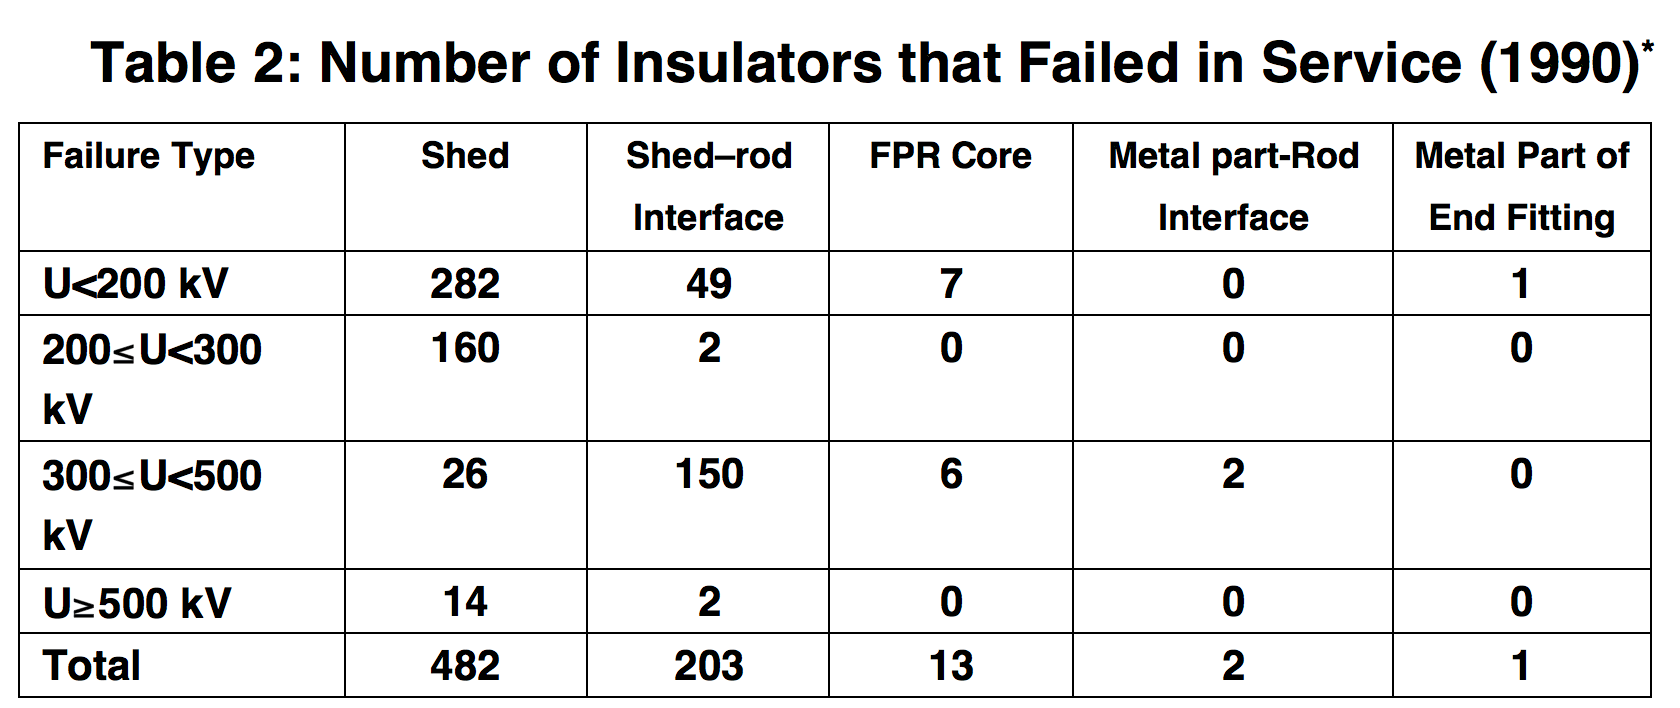 * Data from CIGRE Sub-Working Group 03.01. Worldwide service experience with HV composite insulators. Electra, 1990(130): 69-77. [object object] Key Issues for Future of Composite Insulators Screen Shot 2018 09 28 at 15